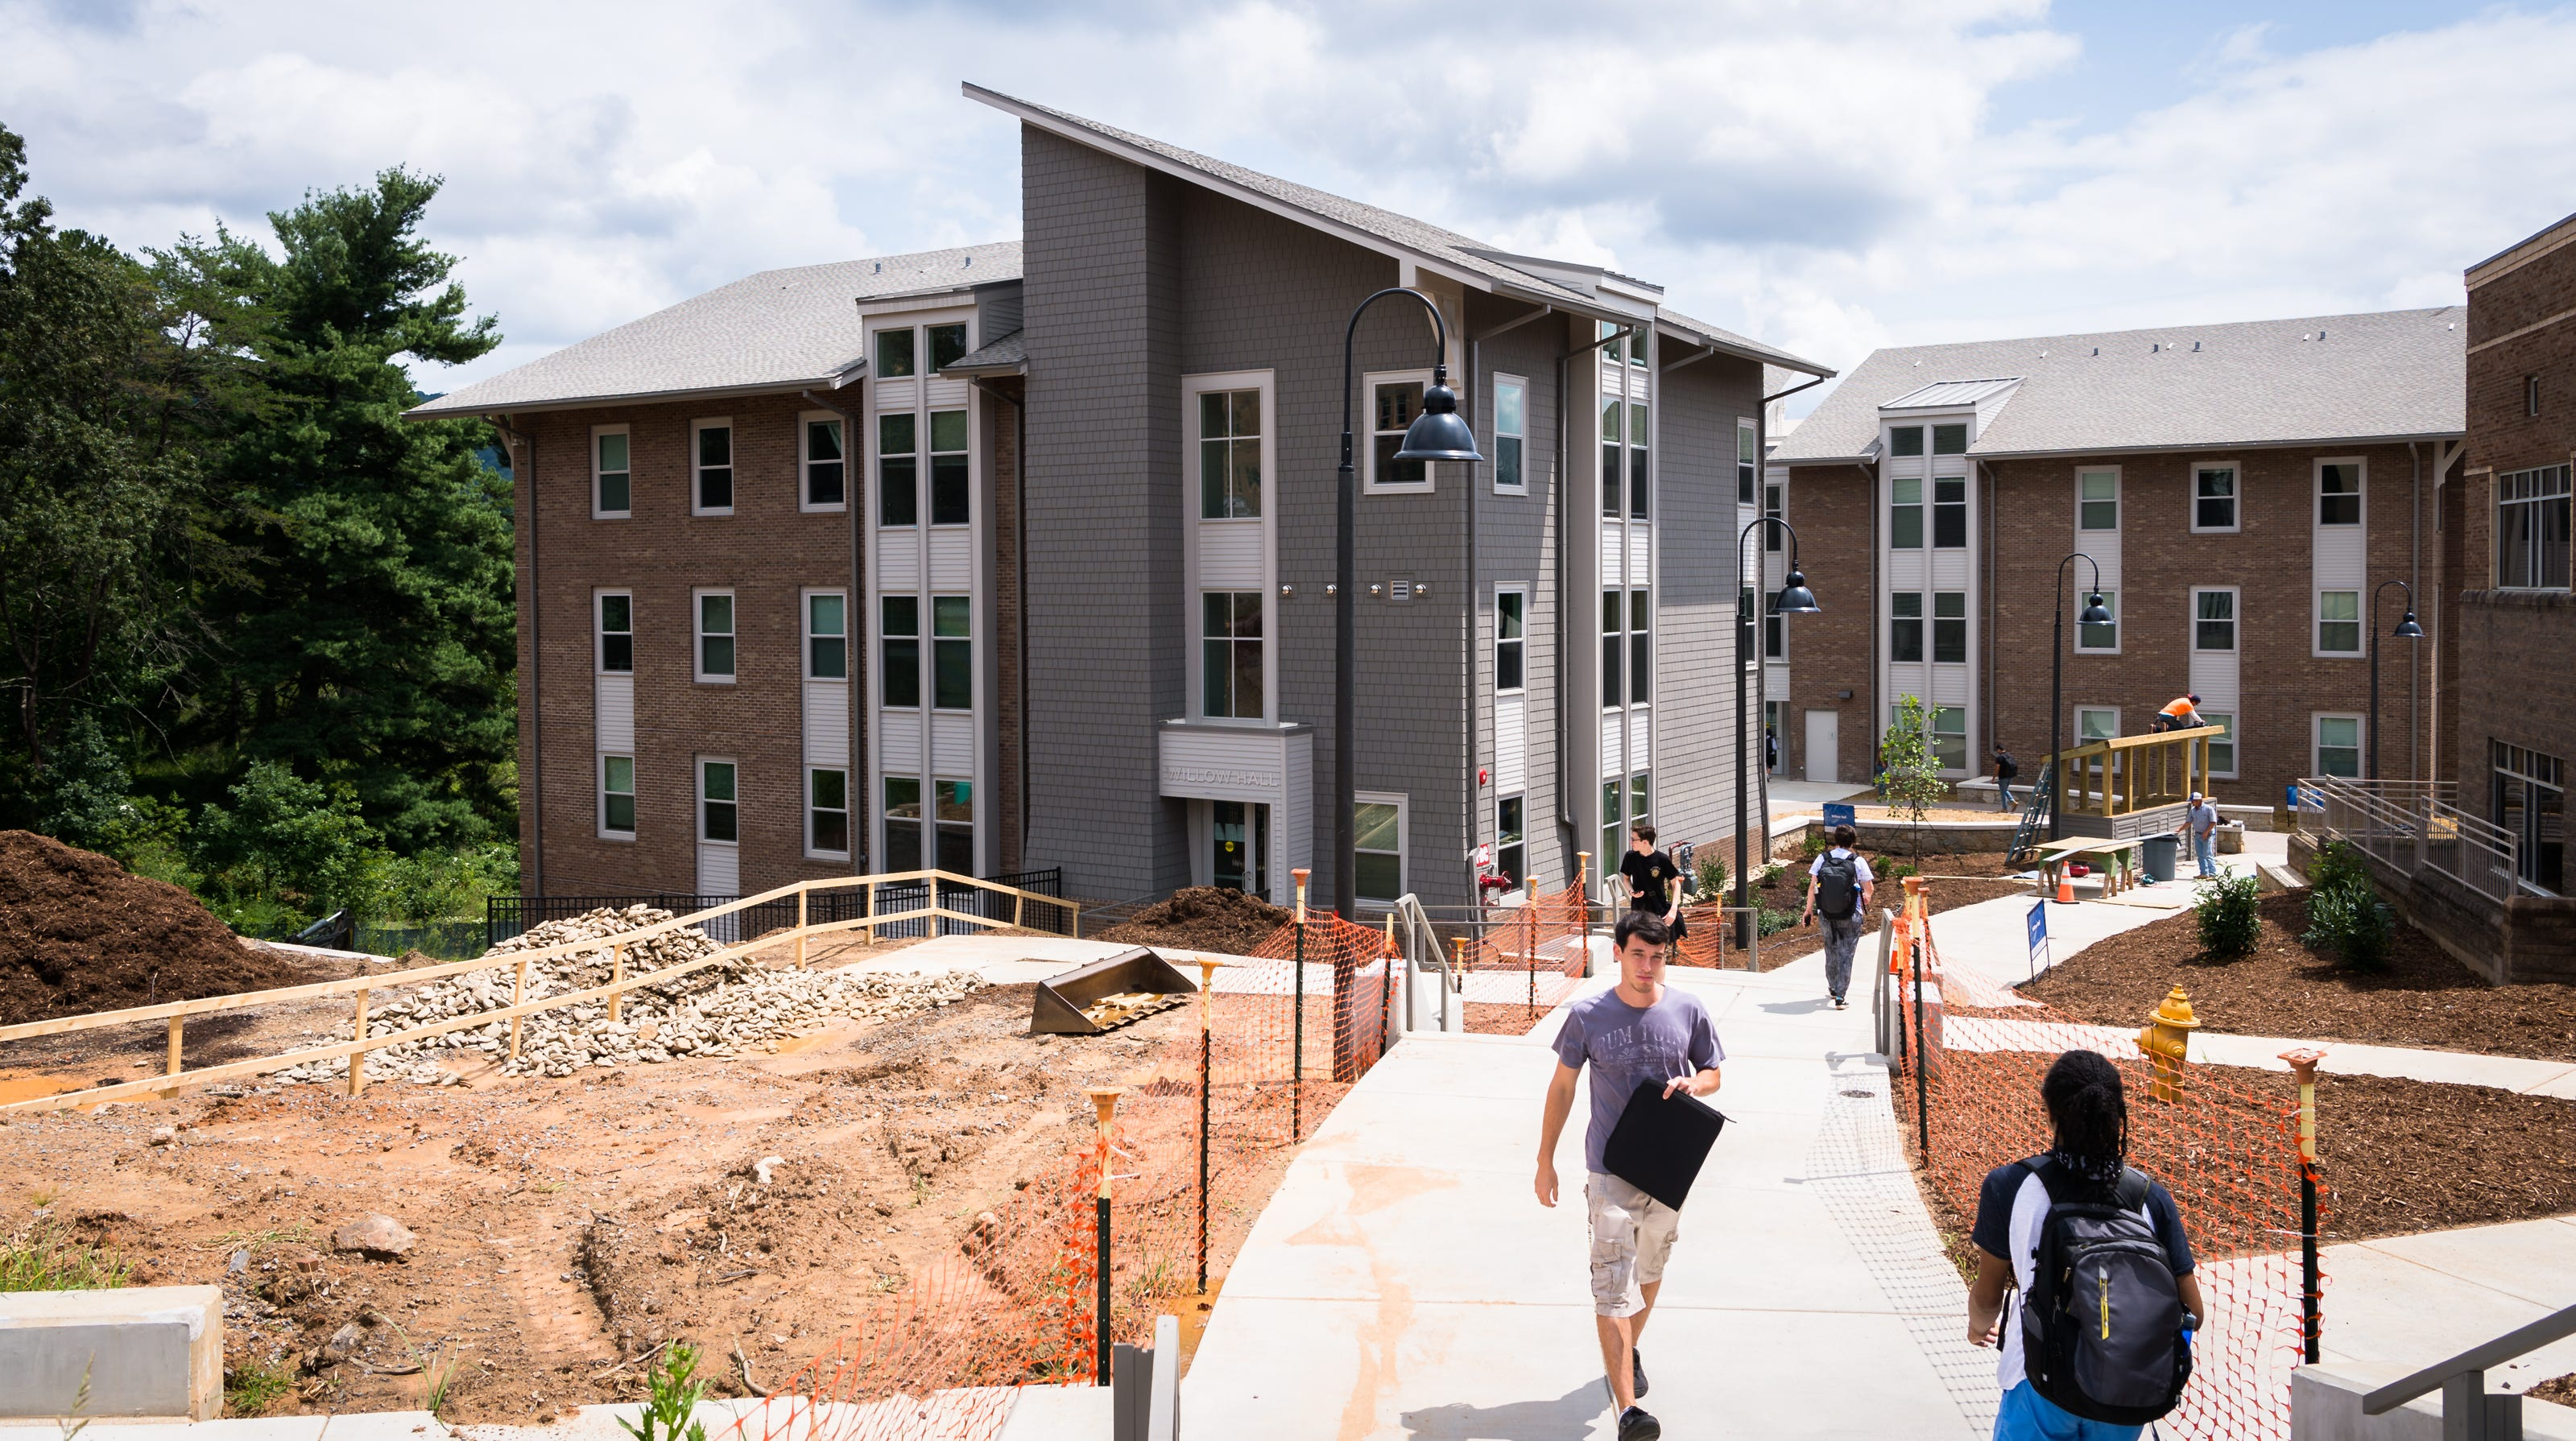 UNC Asheville plans improvements at dorms deemed fire safety concern